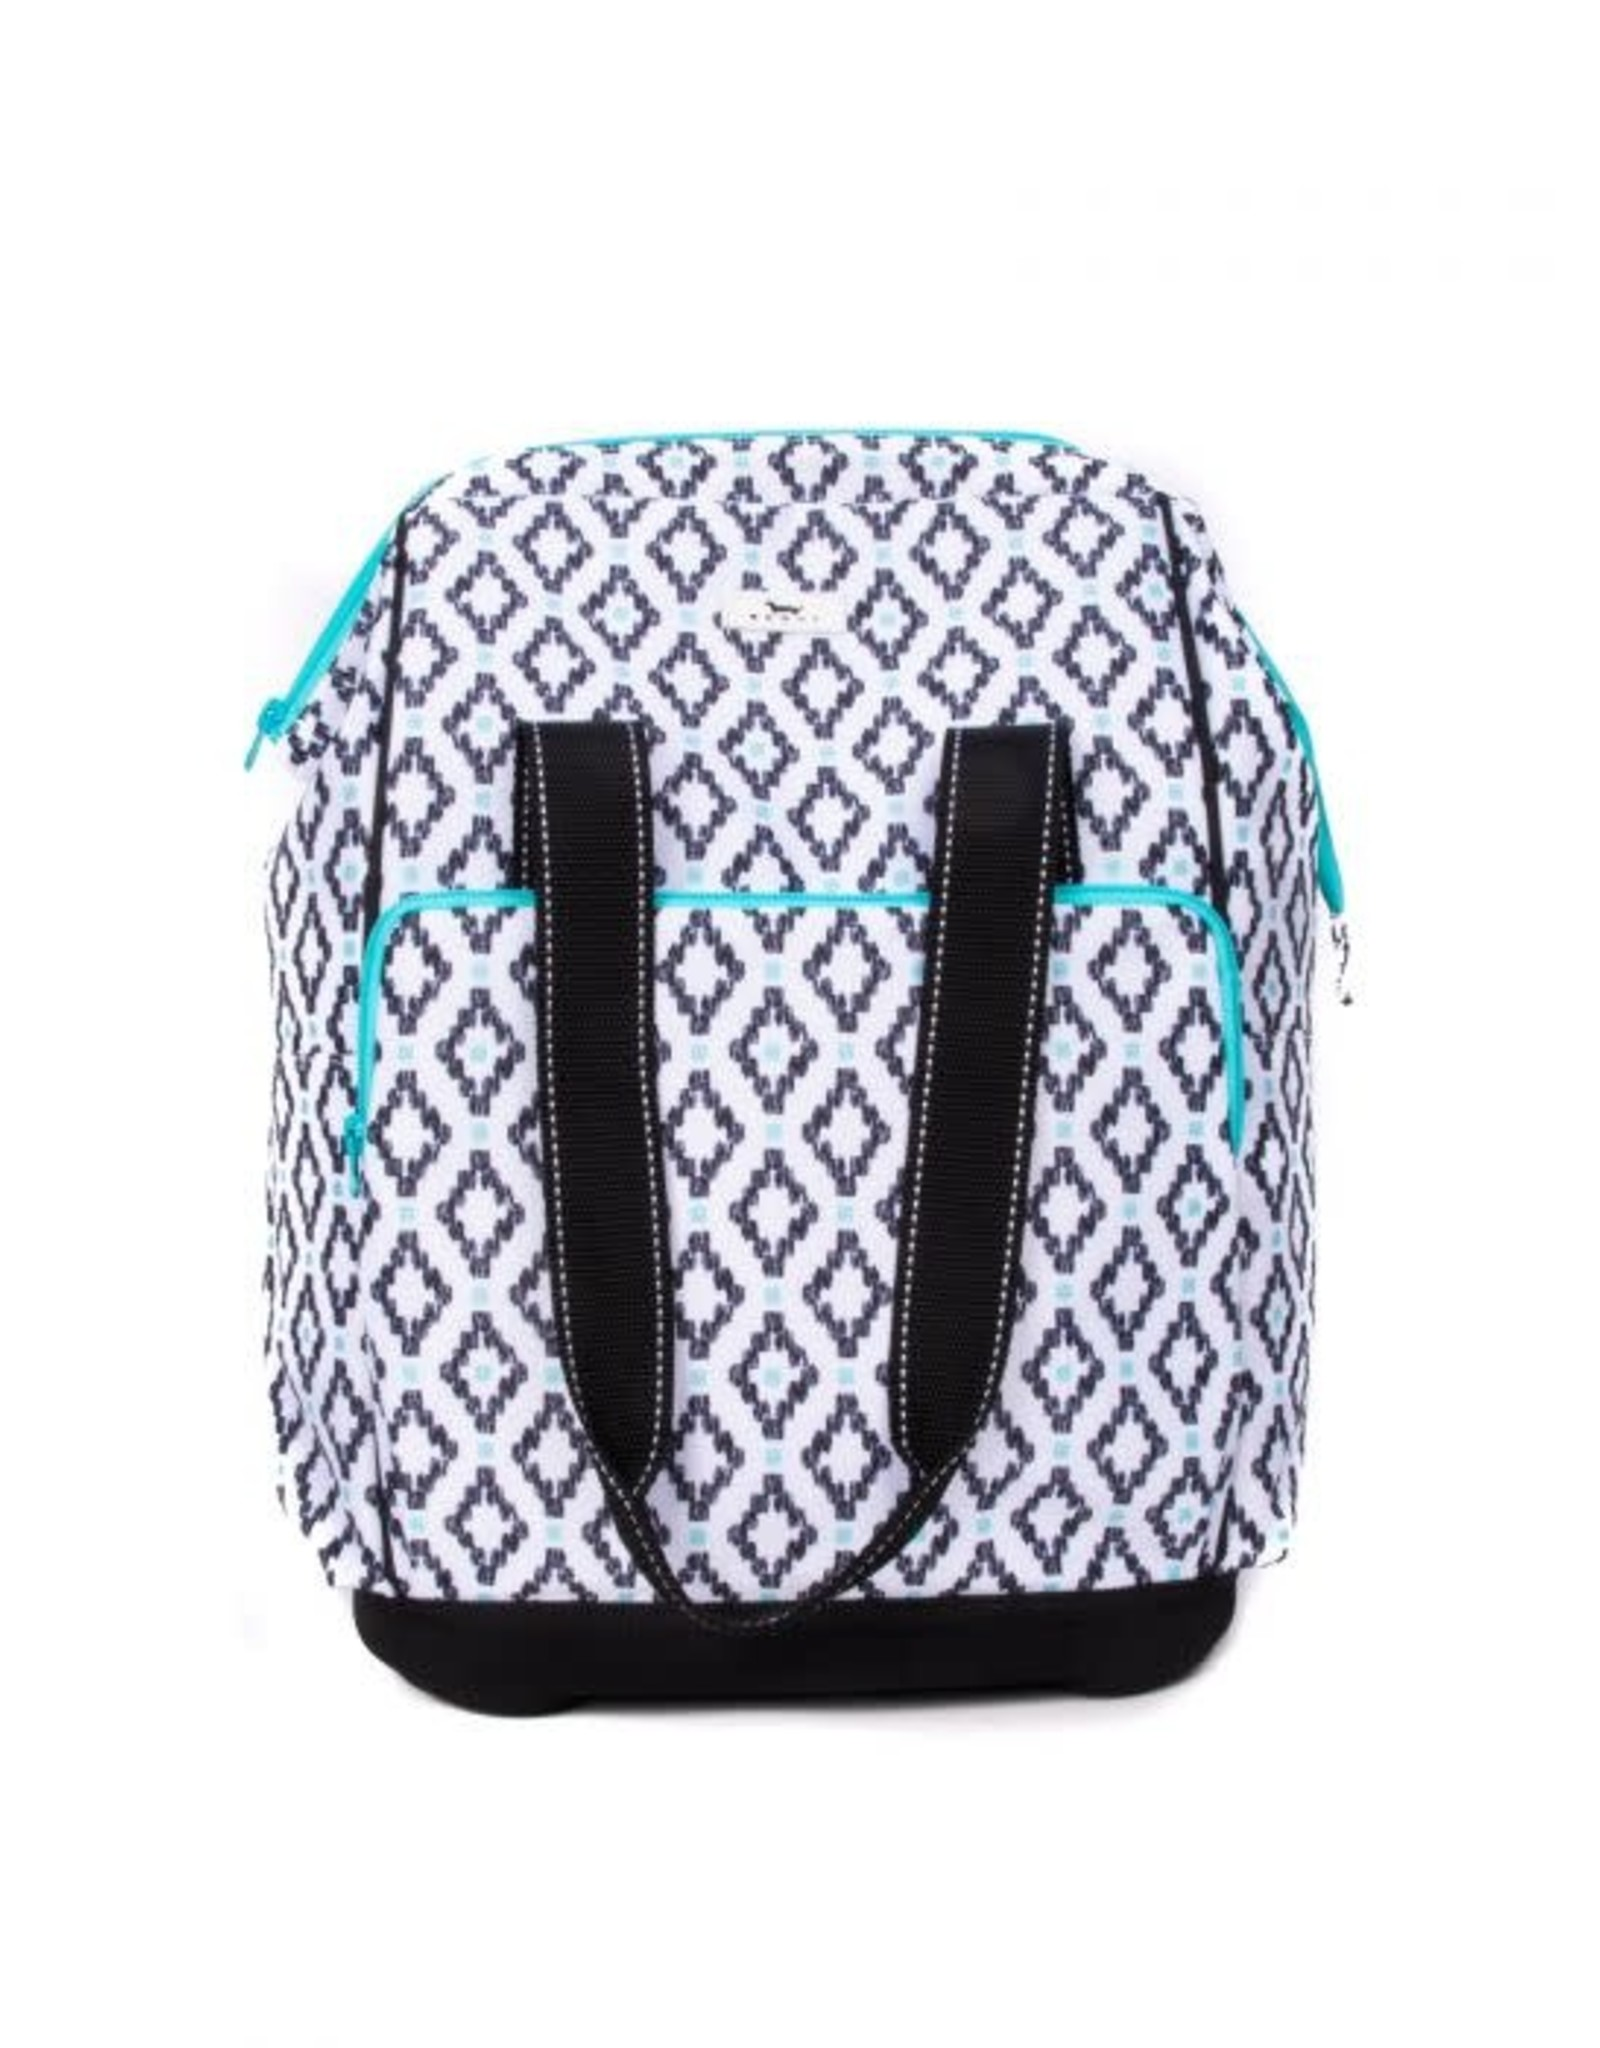 SCOUT SCOUT Play it Cool- Teal Diamond